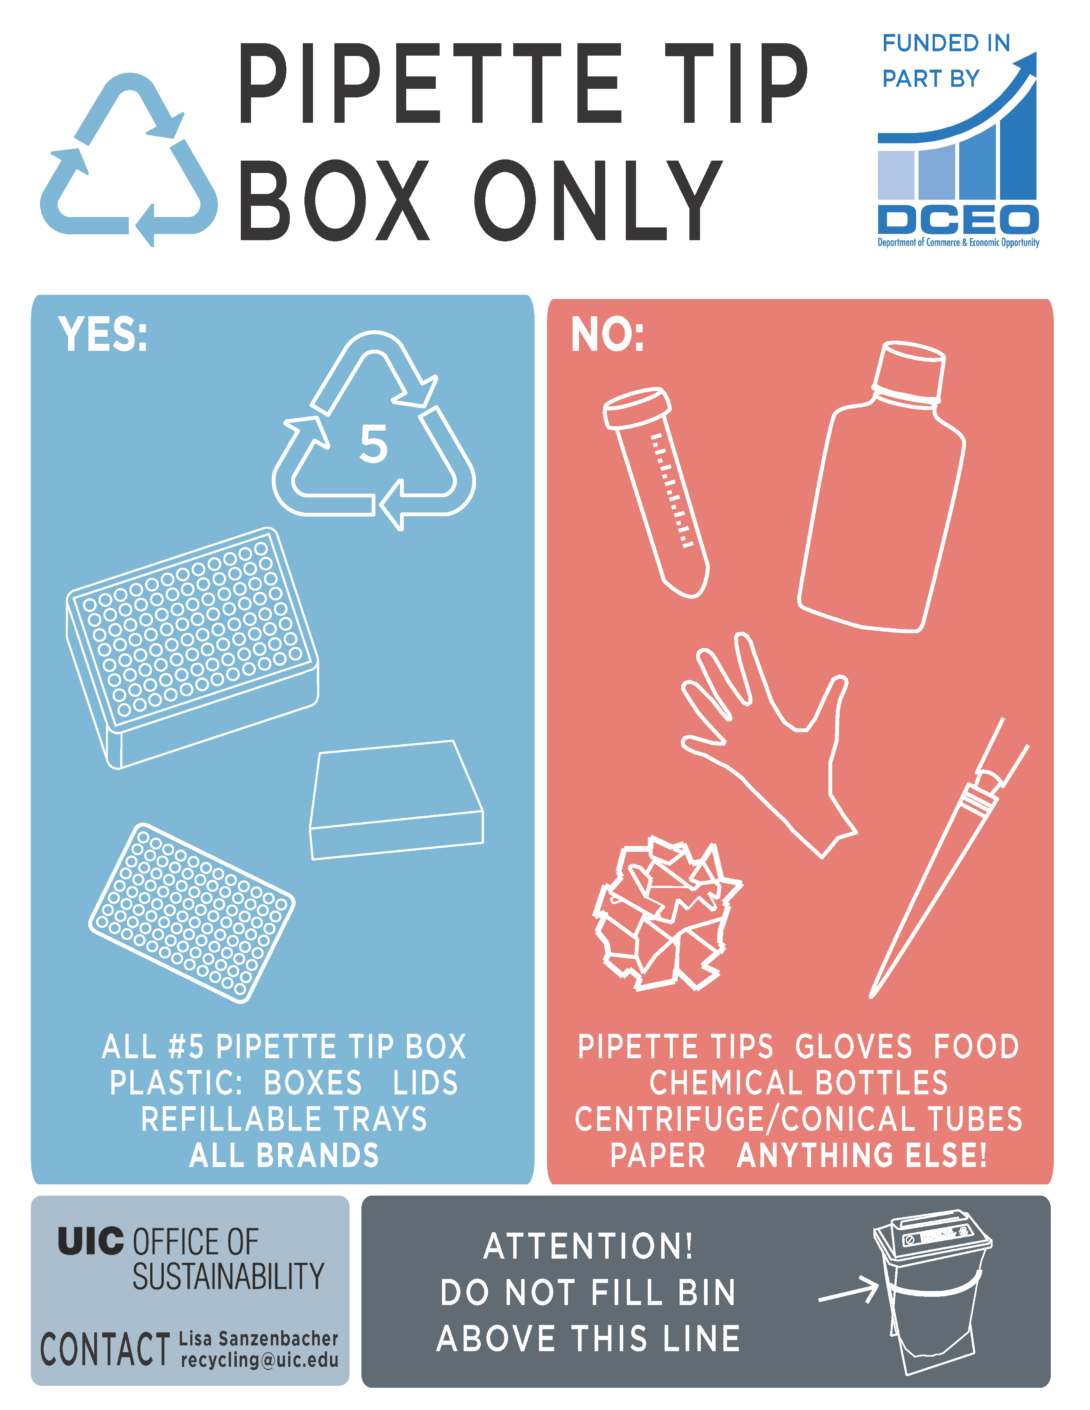 Pipette Tip Box recycling poster